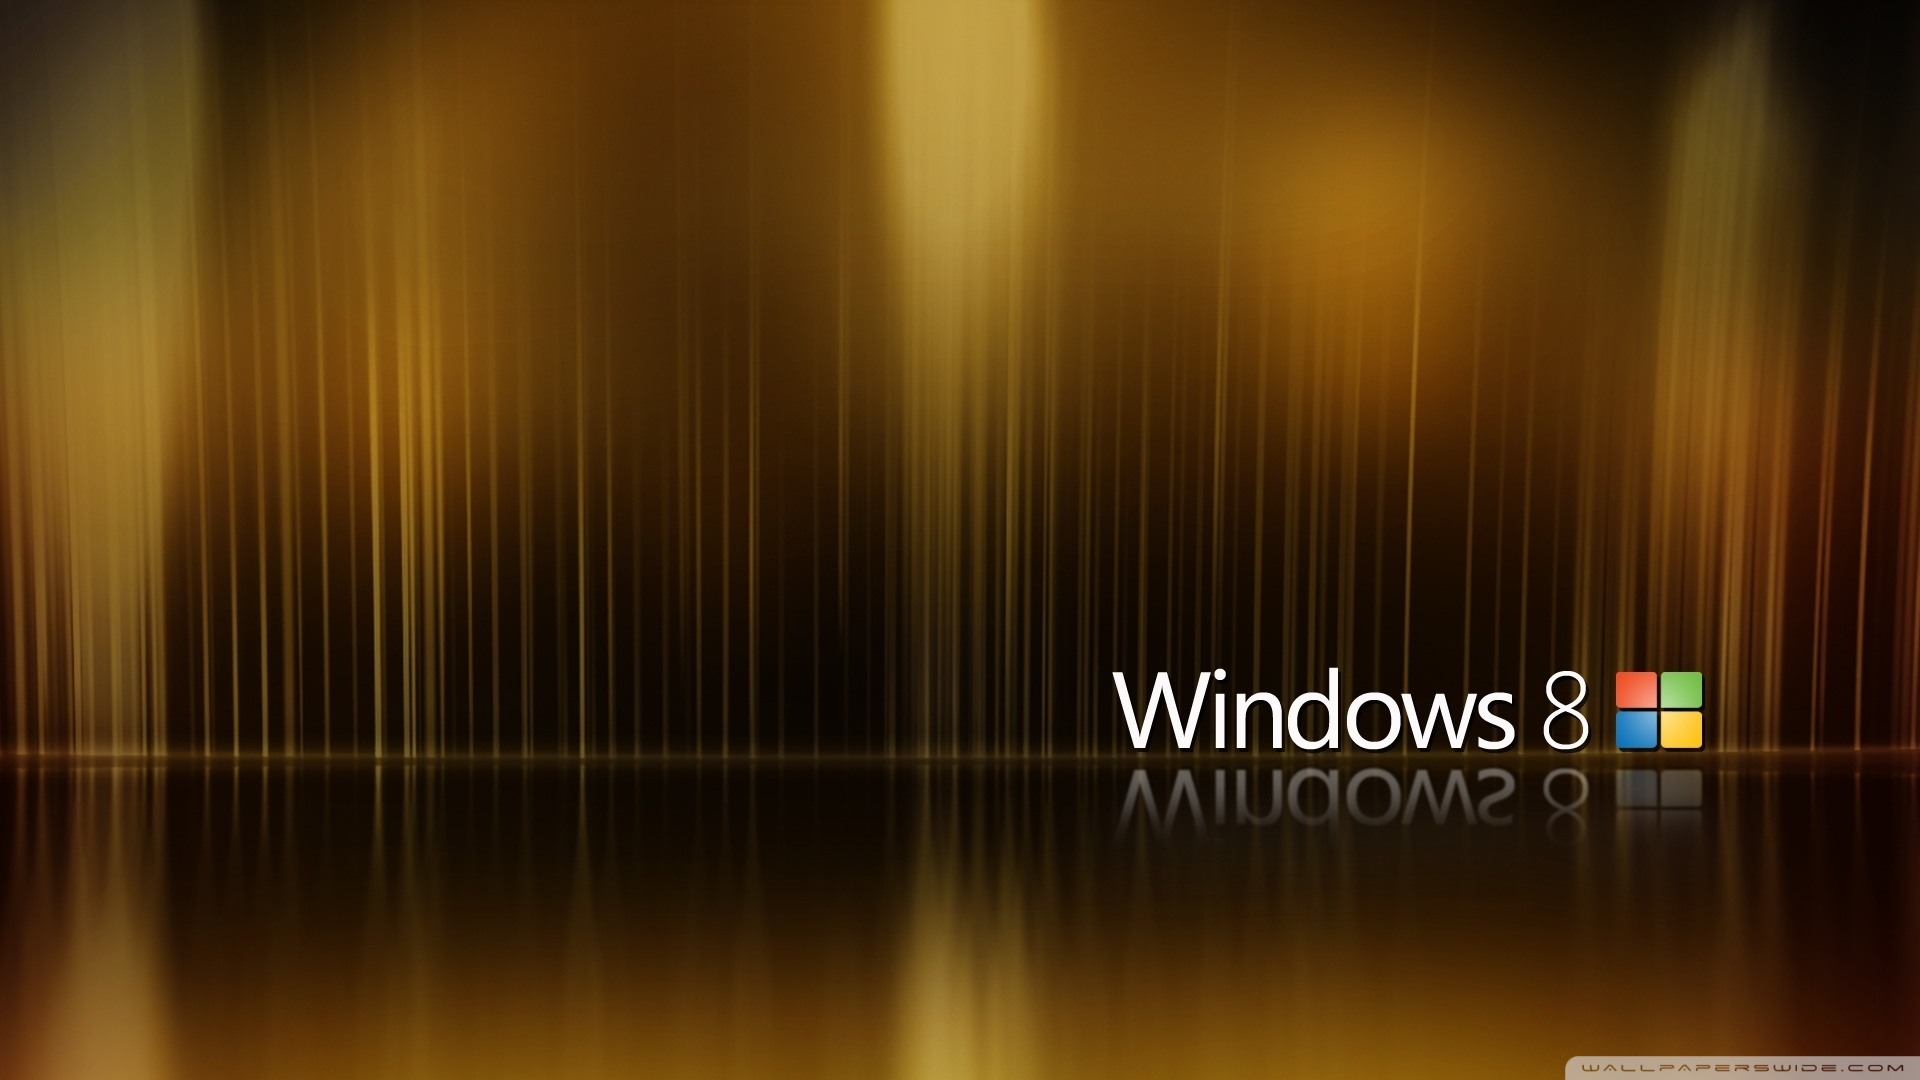 Wallpaper For Windows 8